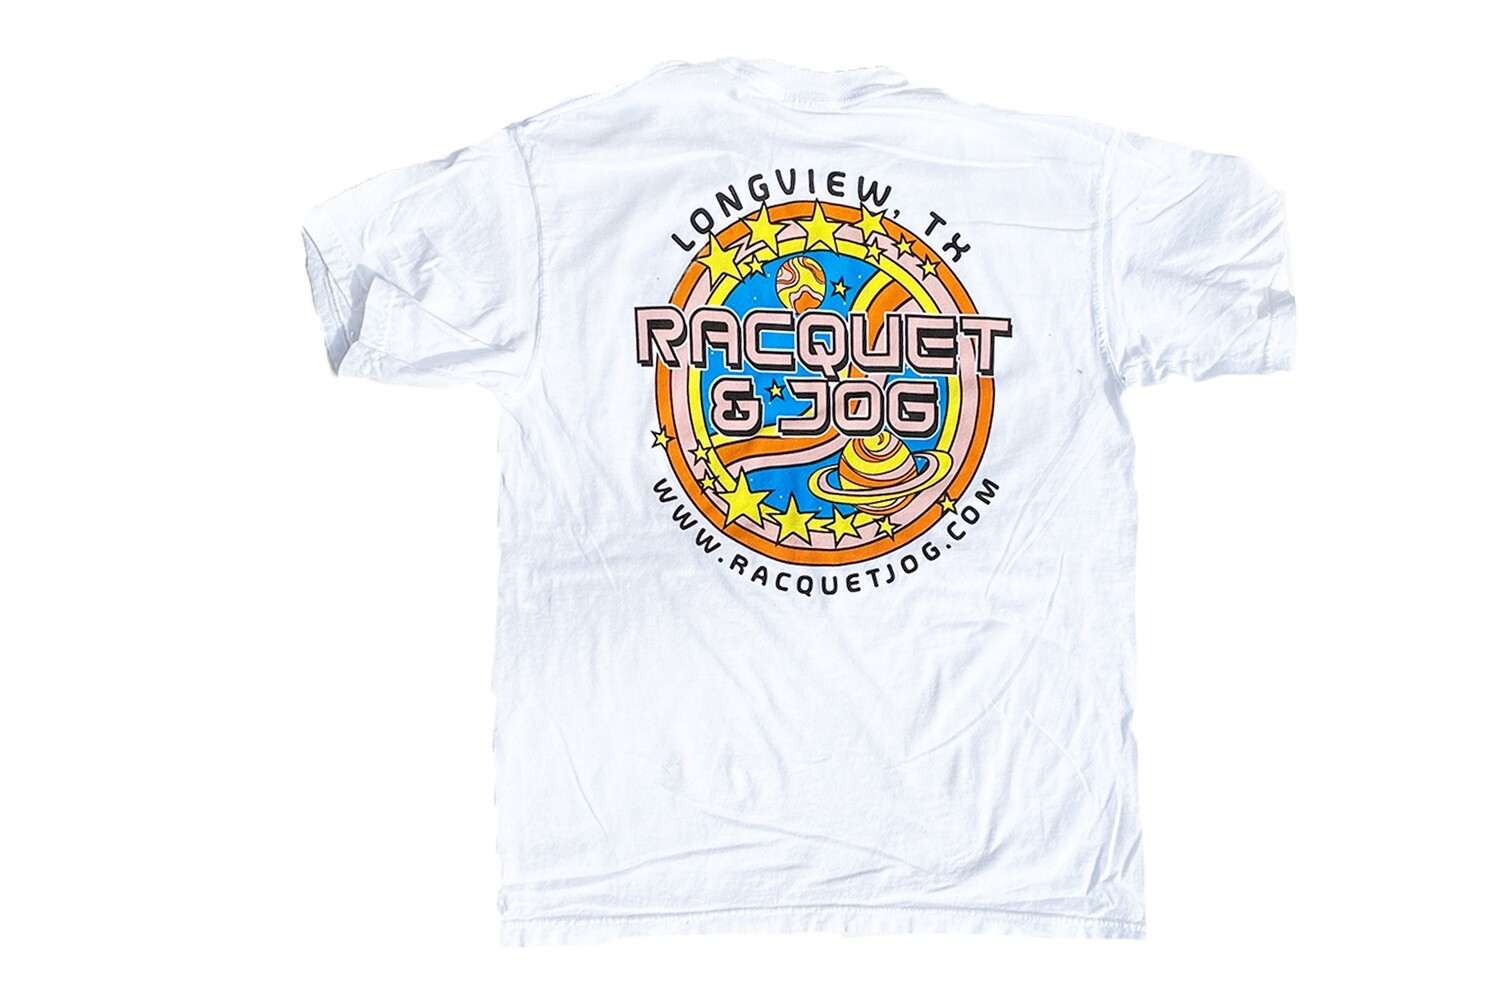 Racquet & Jog Specialty Outerspace Tee